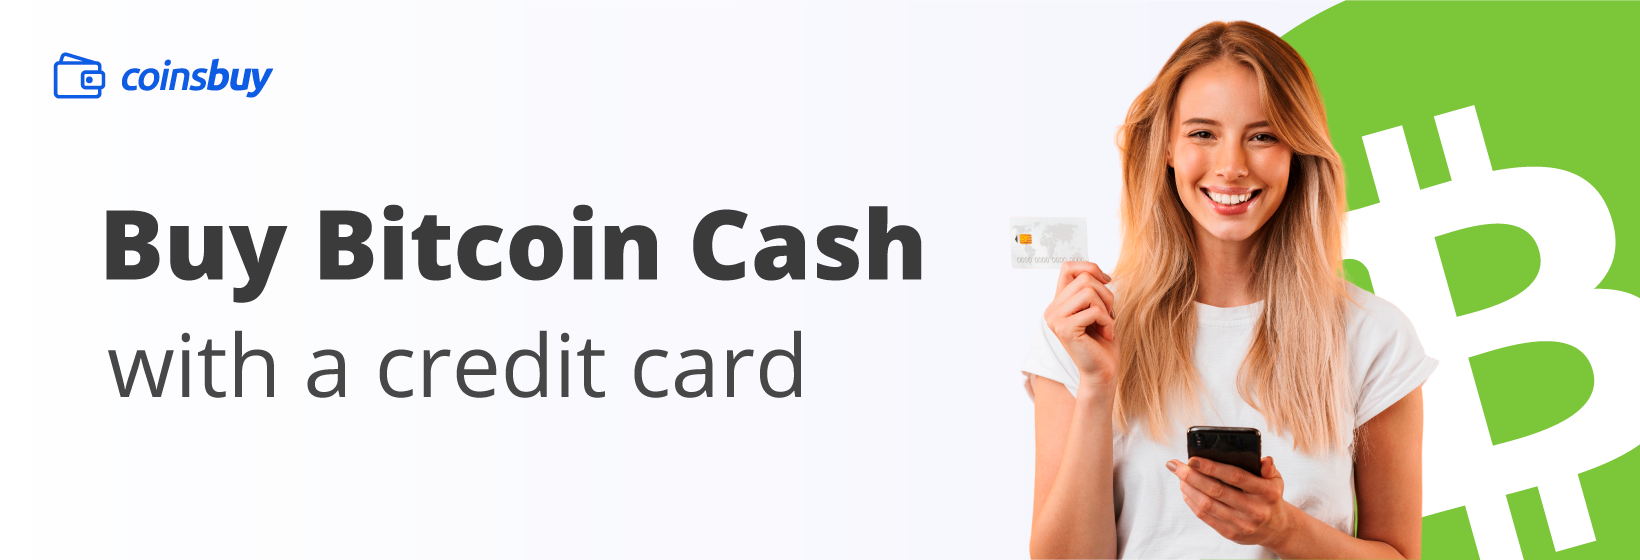 Buy Bitcoin Cash with a credit card